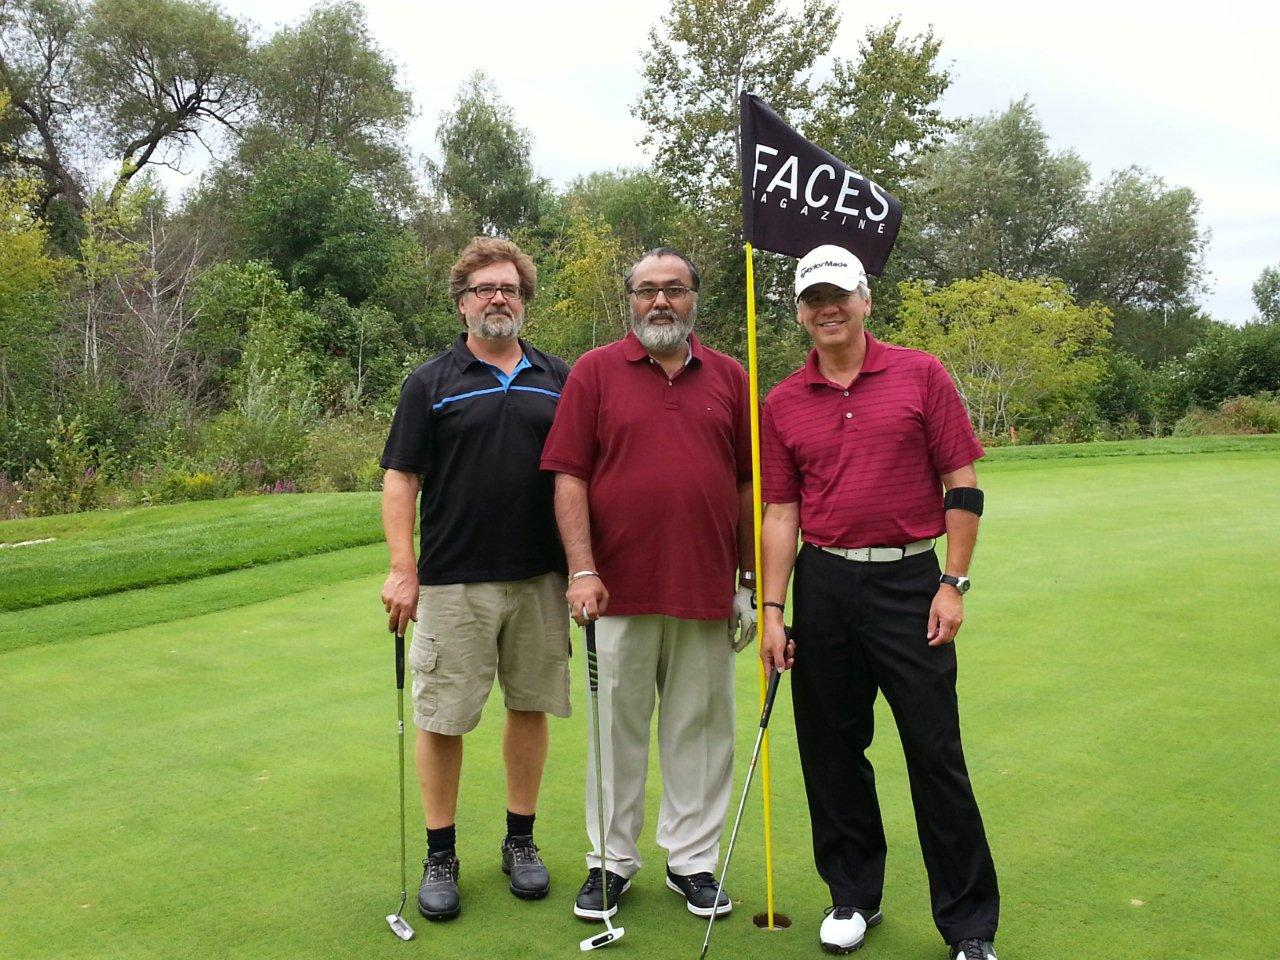 In support of National Capital Charity Classic Golf August 2014 with Michael Allen, Dan Demers, Kira Isabella, Canada Superstar, Ottawa Senetors Zack Smith, Eric Gryba and Cody Ceci